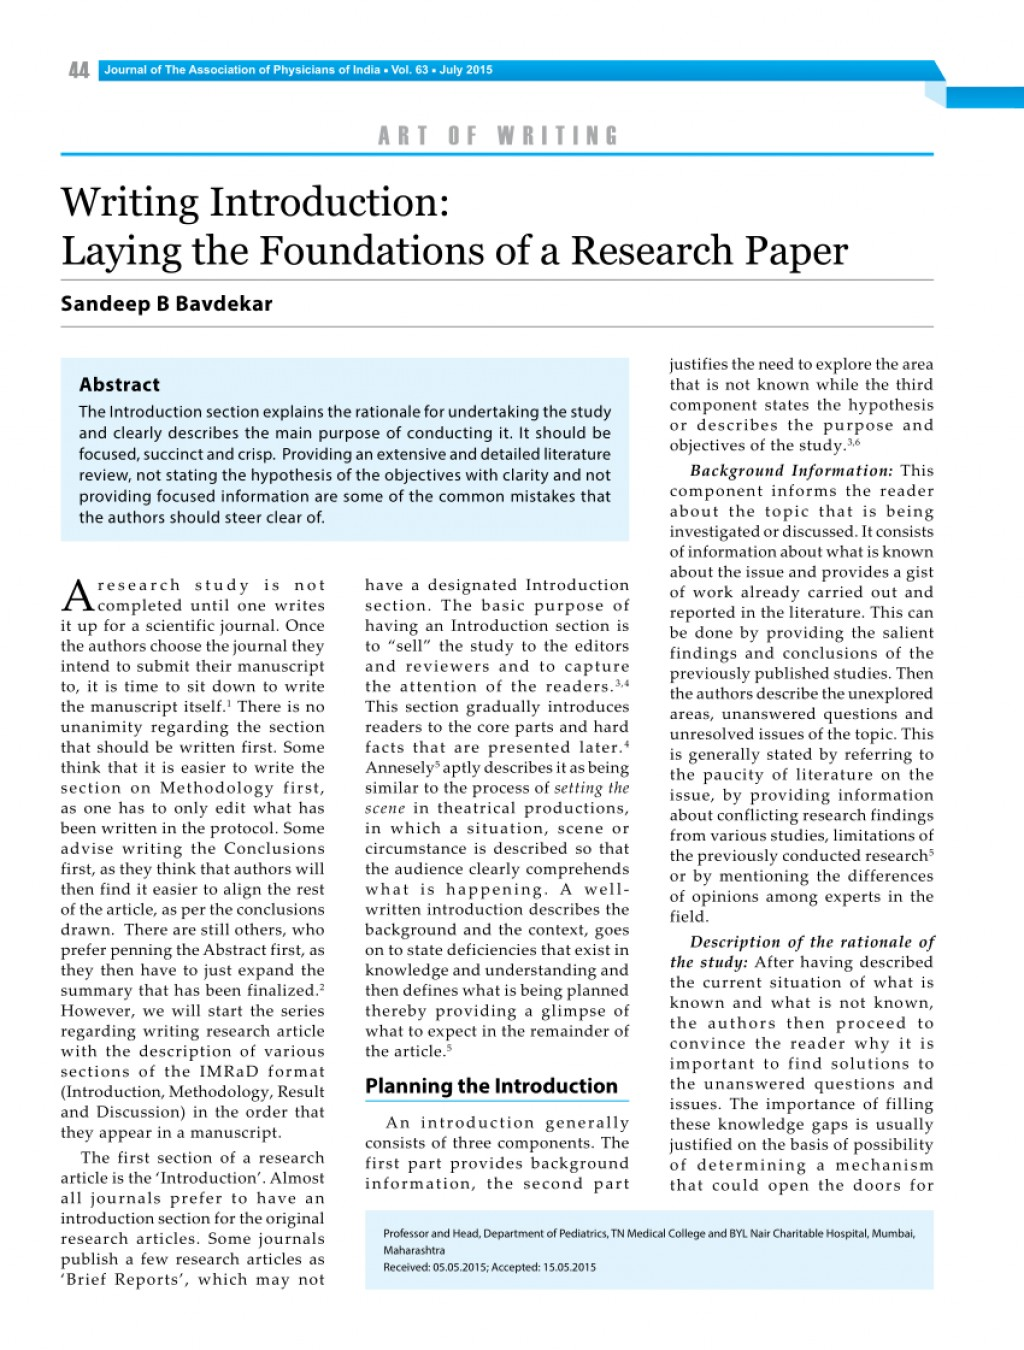 003 Largepreview How To Write An Intro For Research Phenomenal A Paper Psychology Introduction Purdue Owl Outline Large